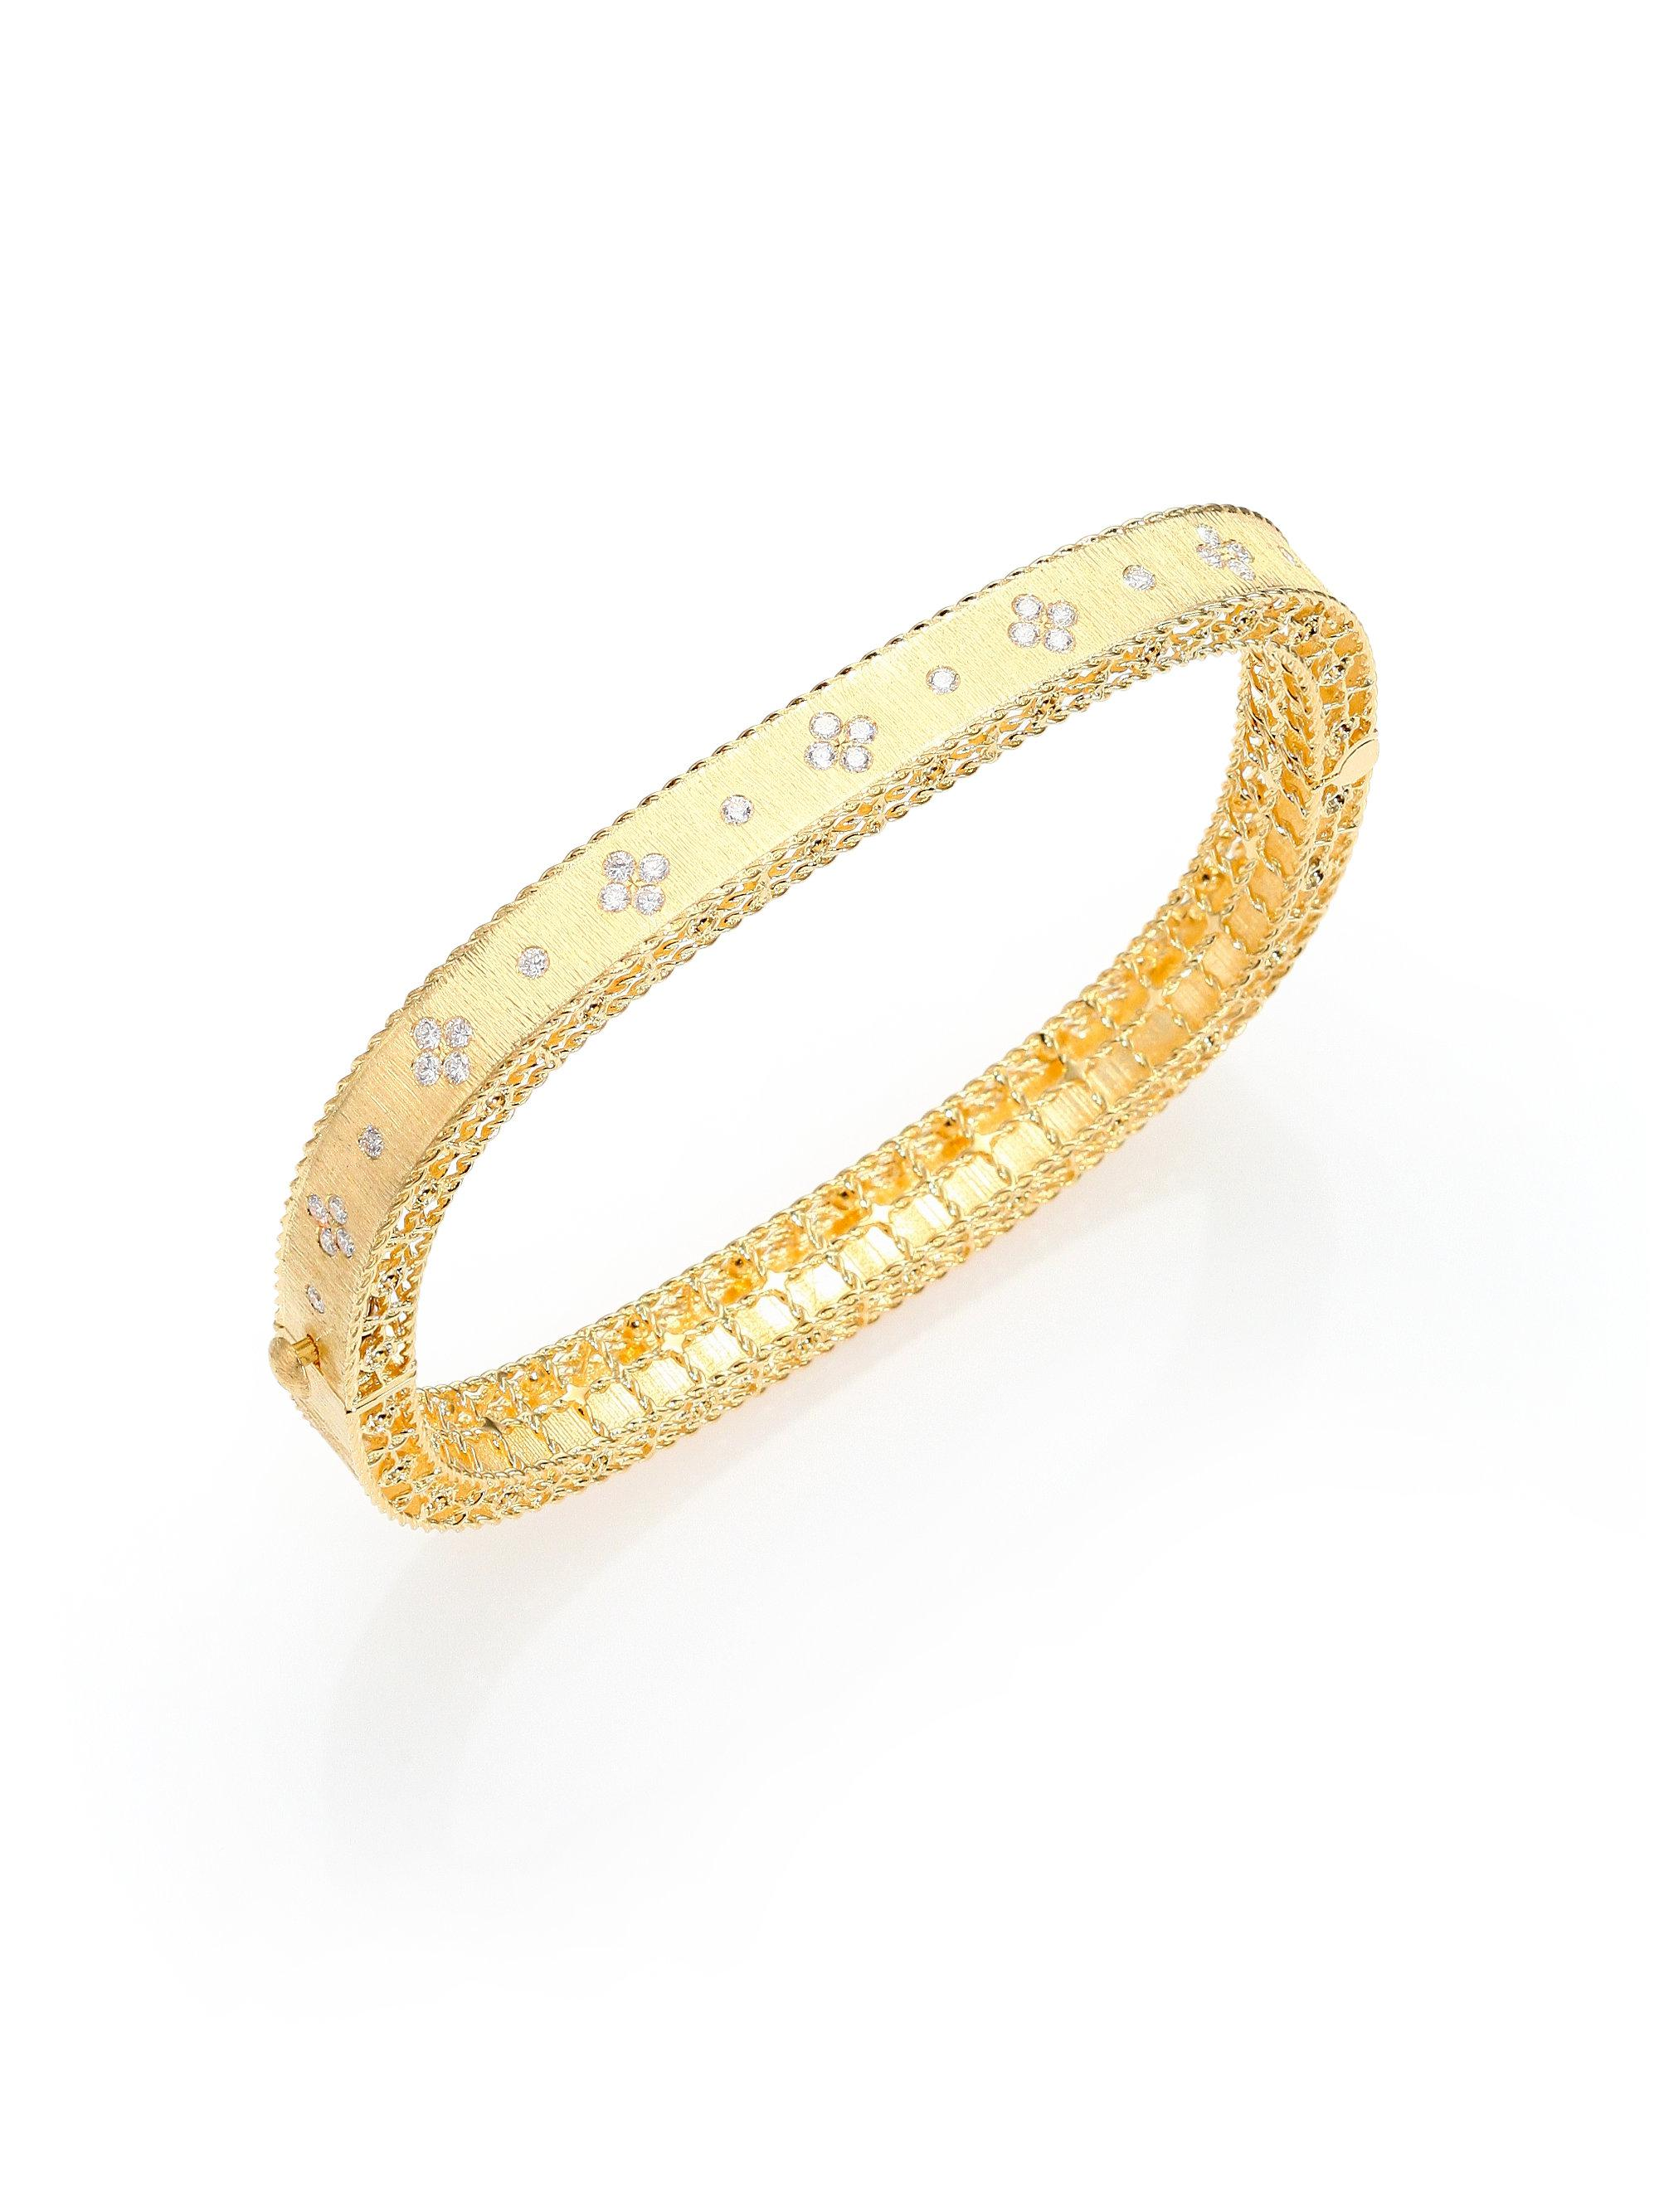 bangles water for detail usd bracelets product jewellery bangle women gold kada